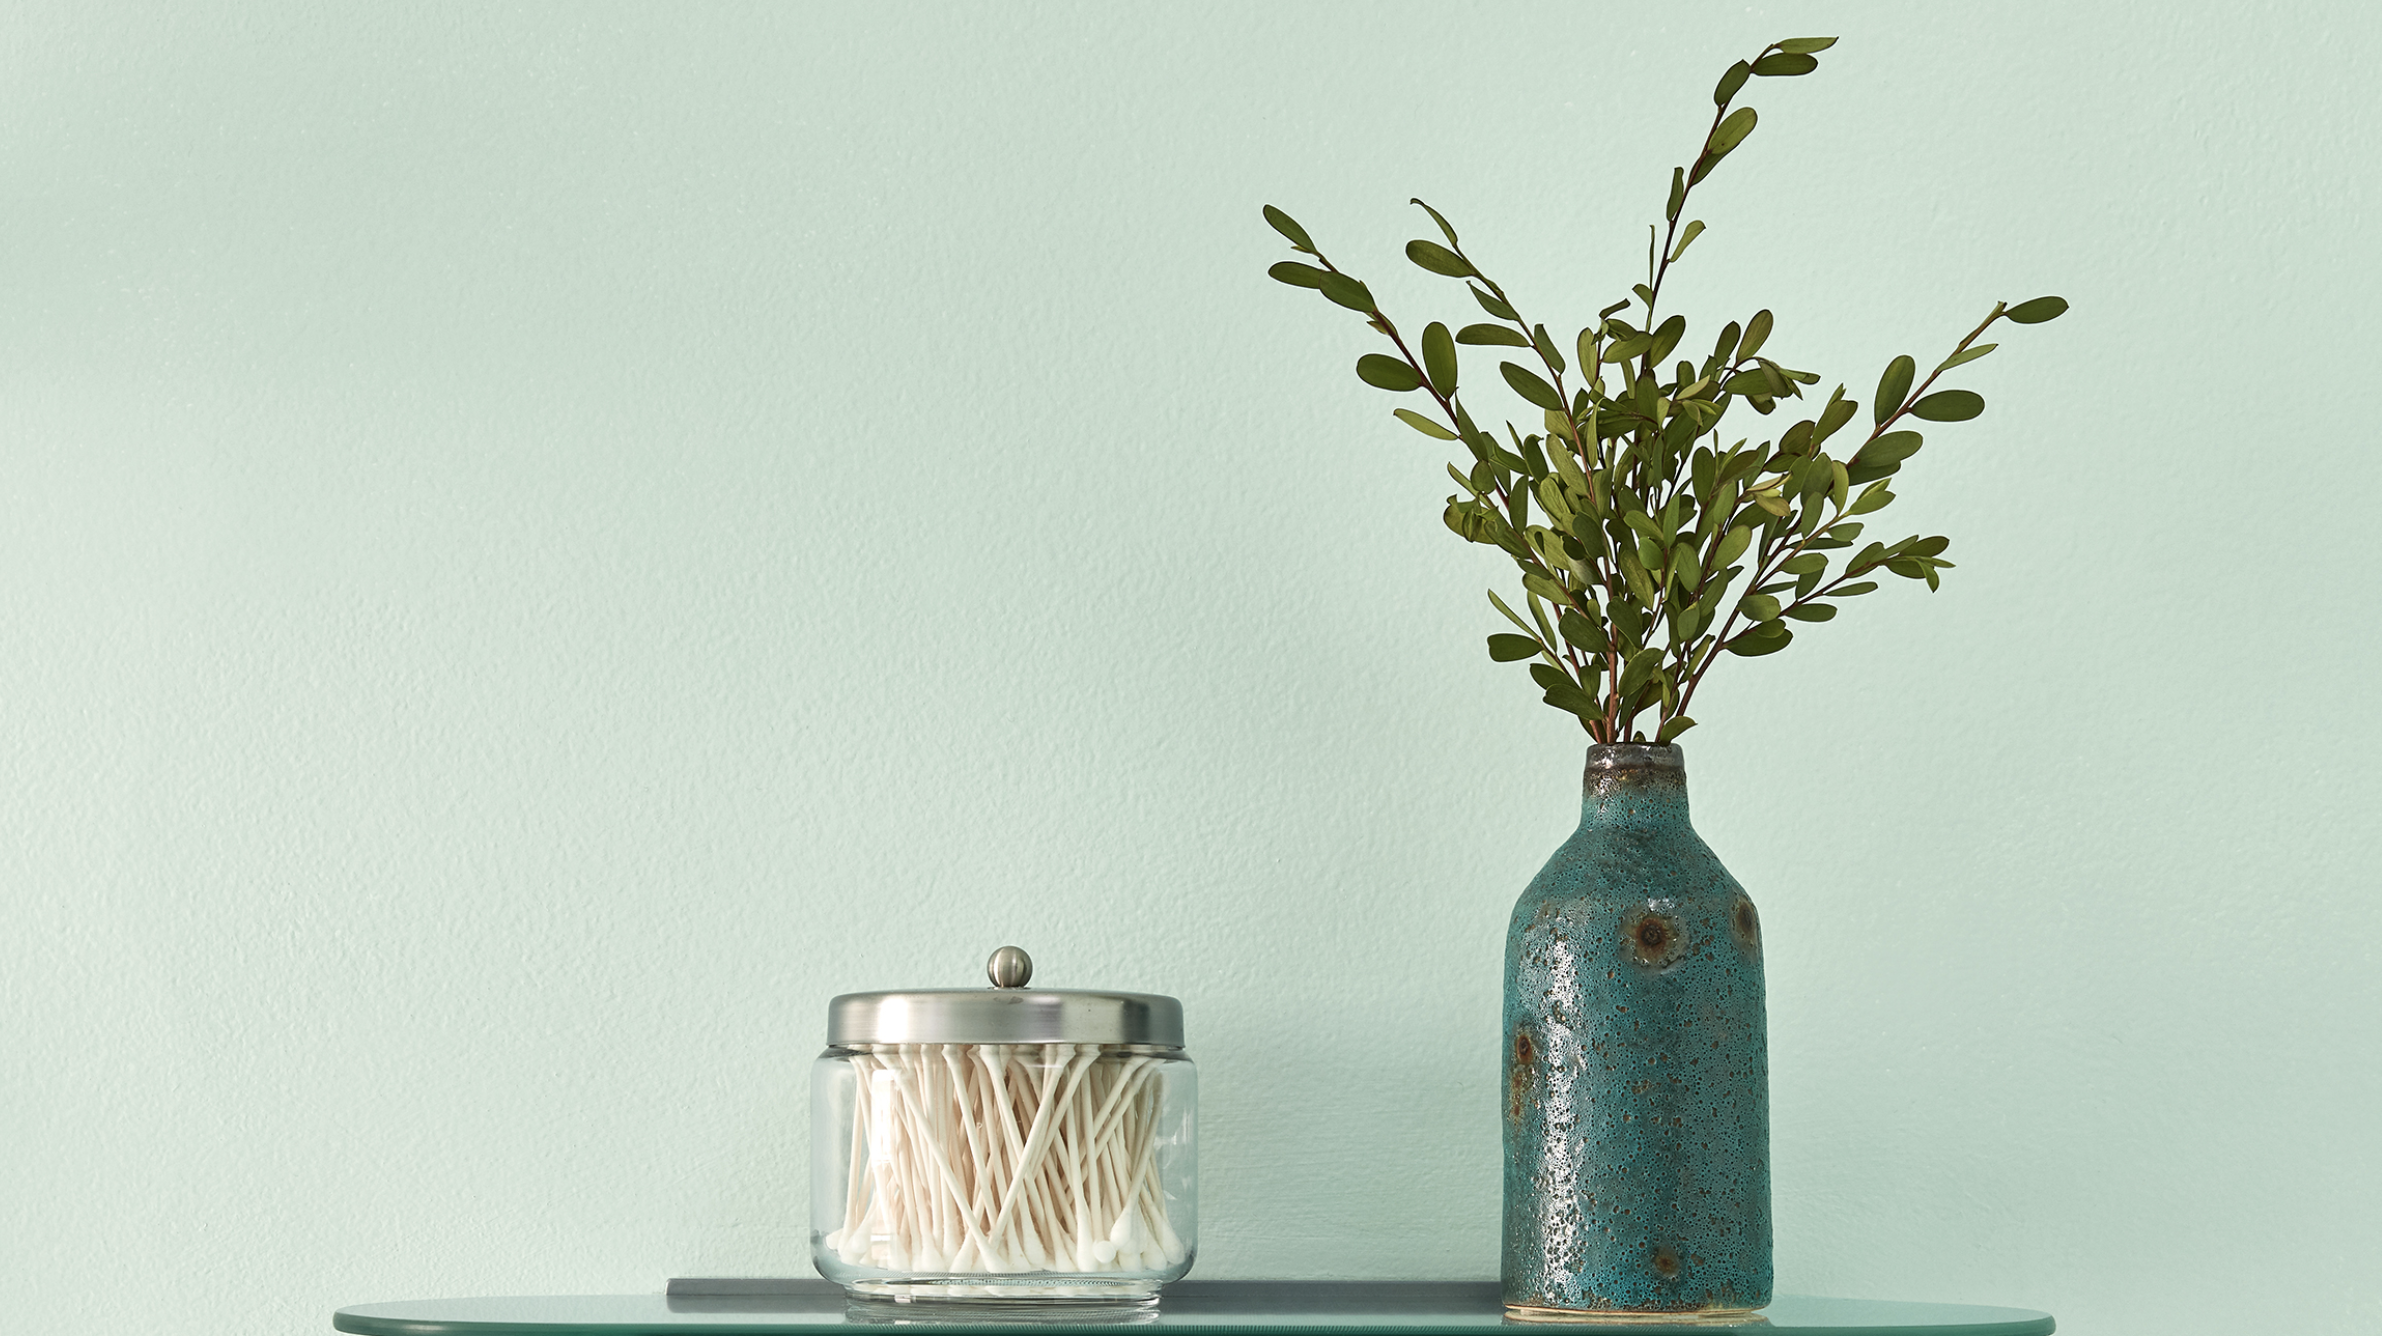 Valspar's Colors of the Year Are All About Calm